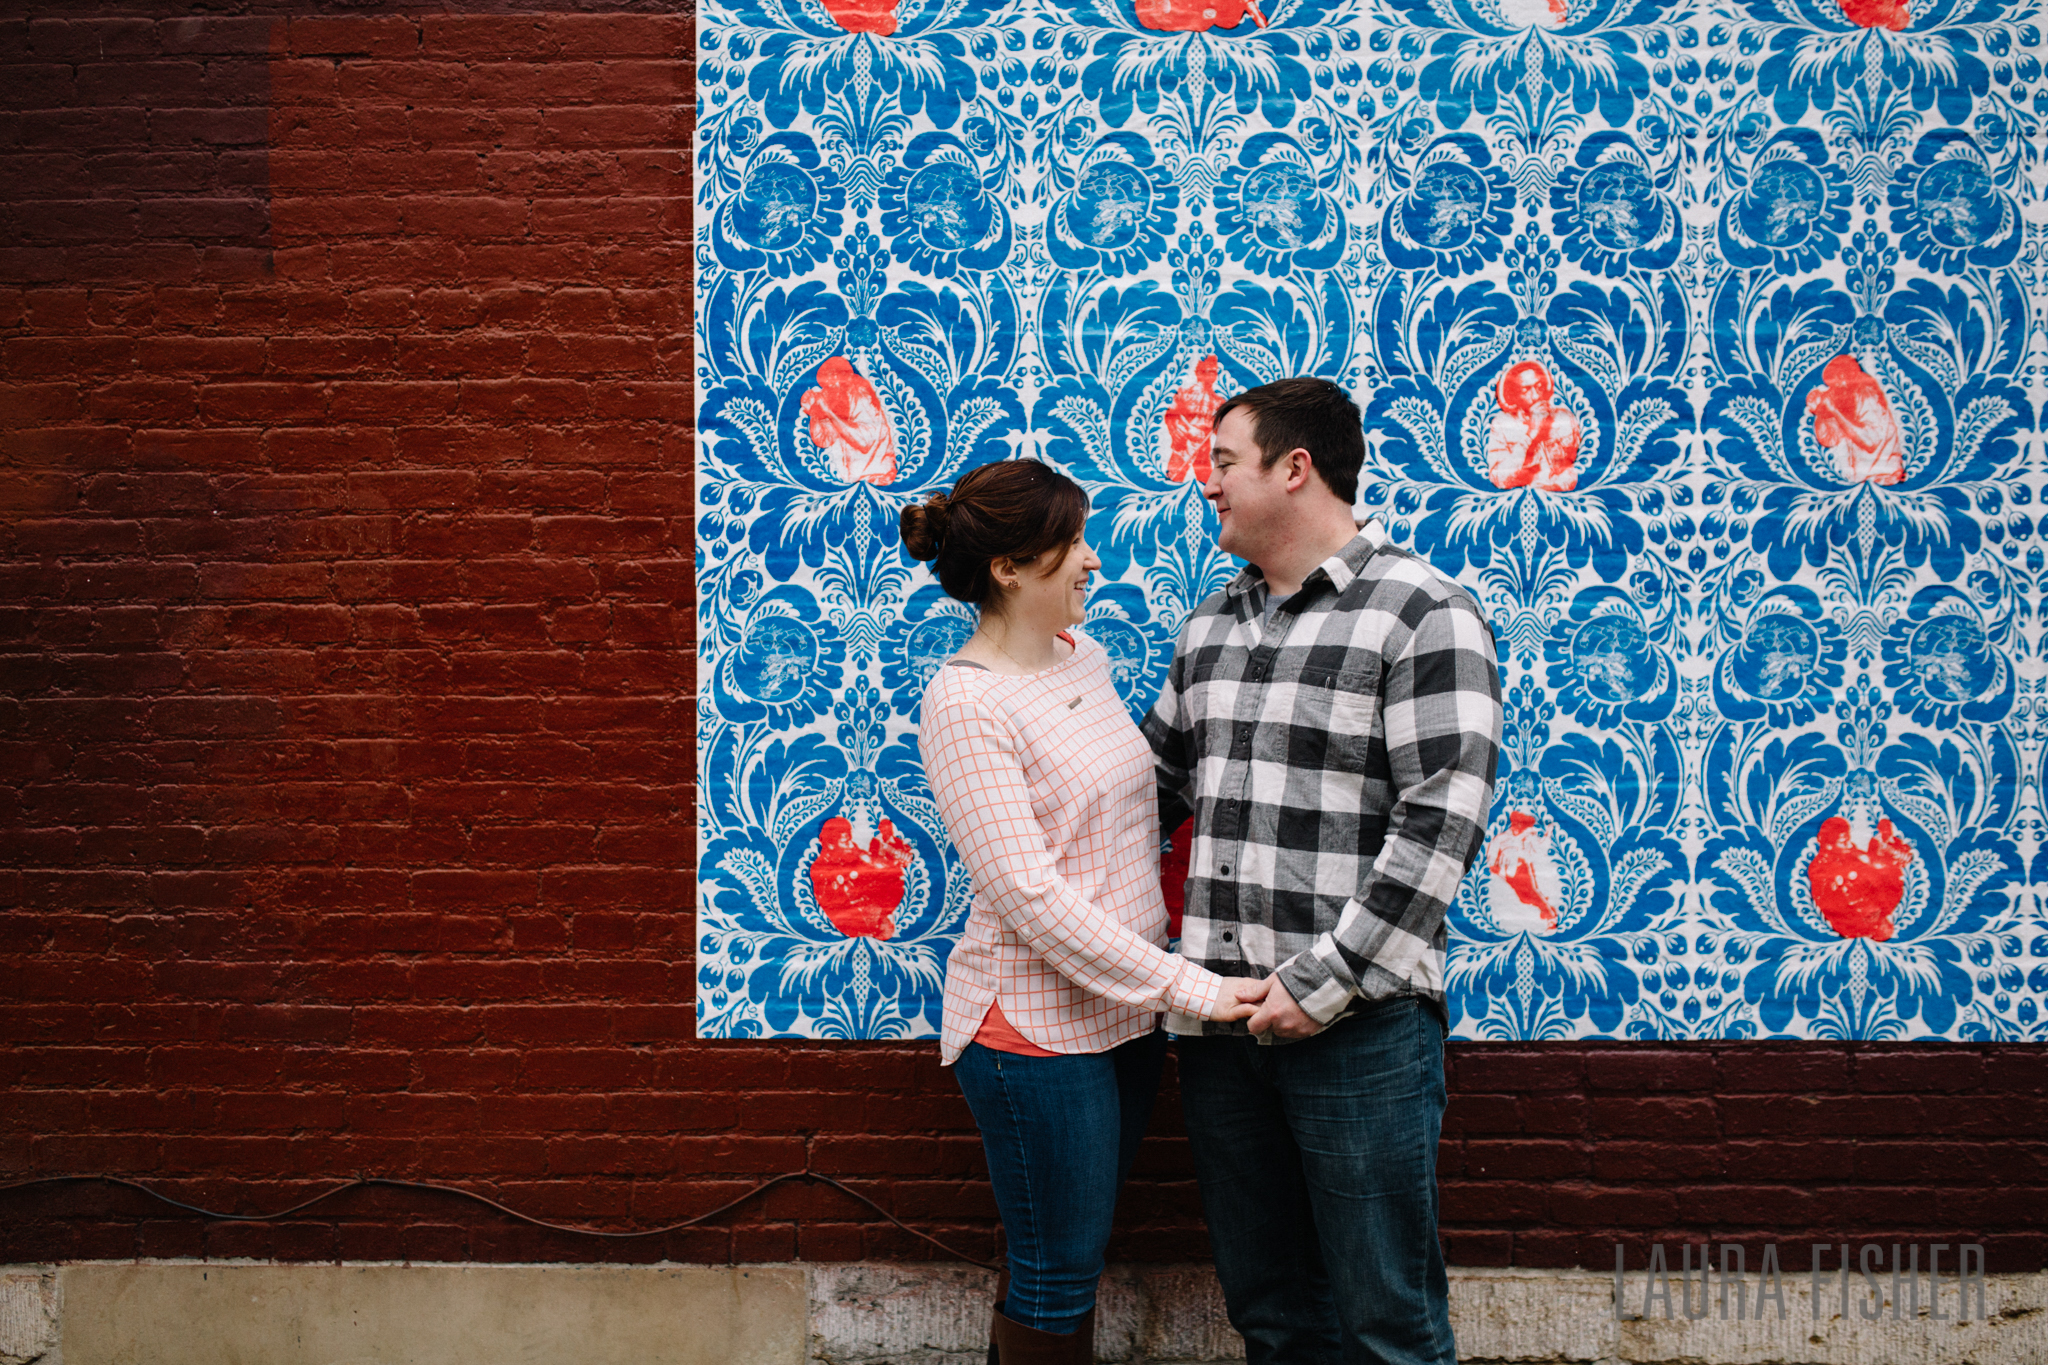 cincinnati-smale-park-OTR-engagement-photography-laura-fisher-0013.jpg